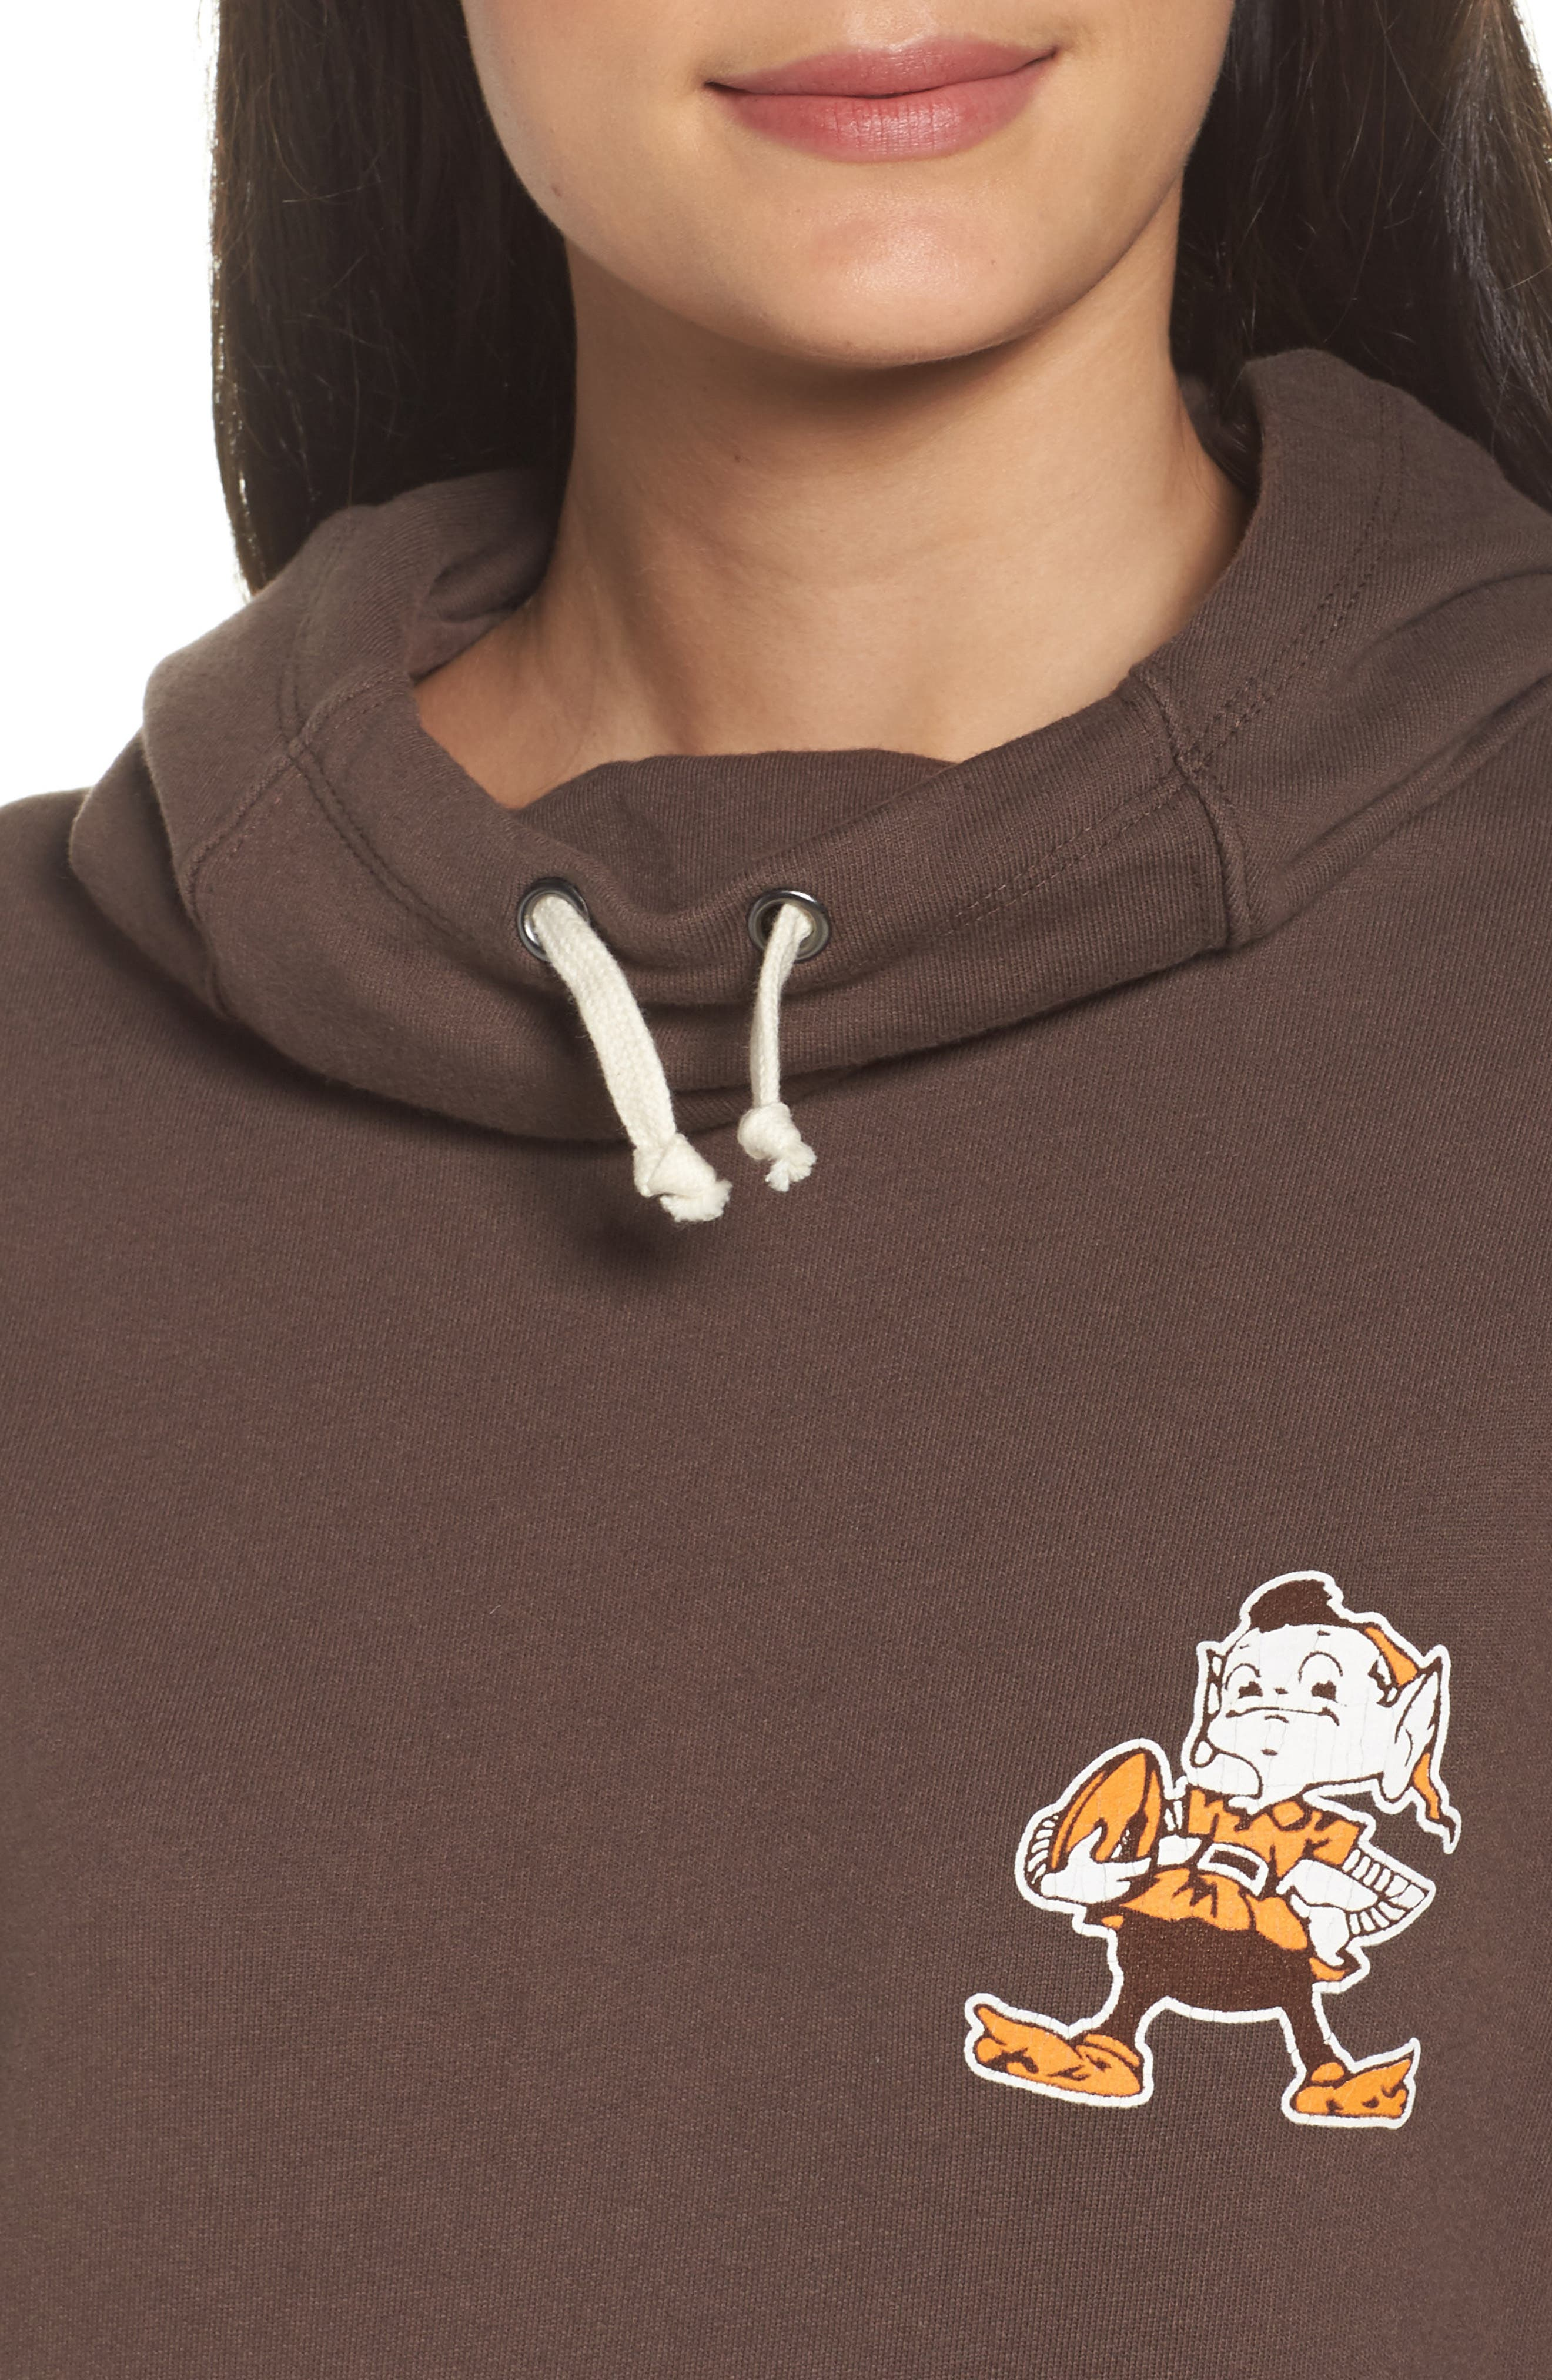 NFL Cleveland Browns Sunday Hoodie,                             Alternate thumbnail 5, color,                             Dark Chocolate